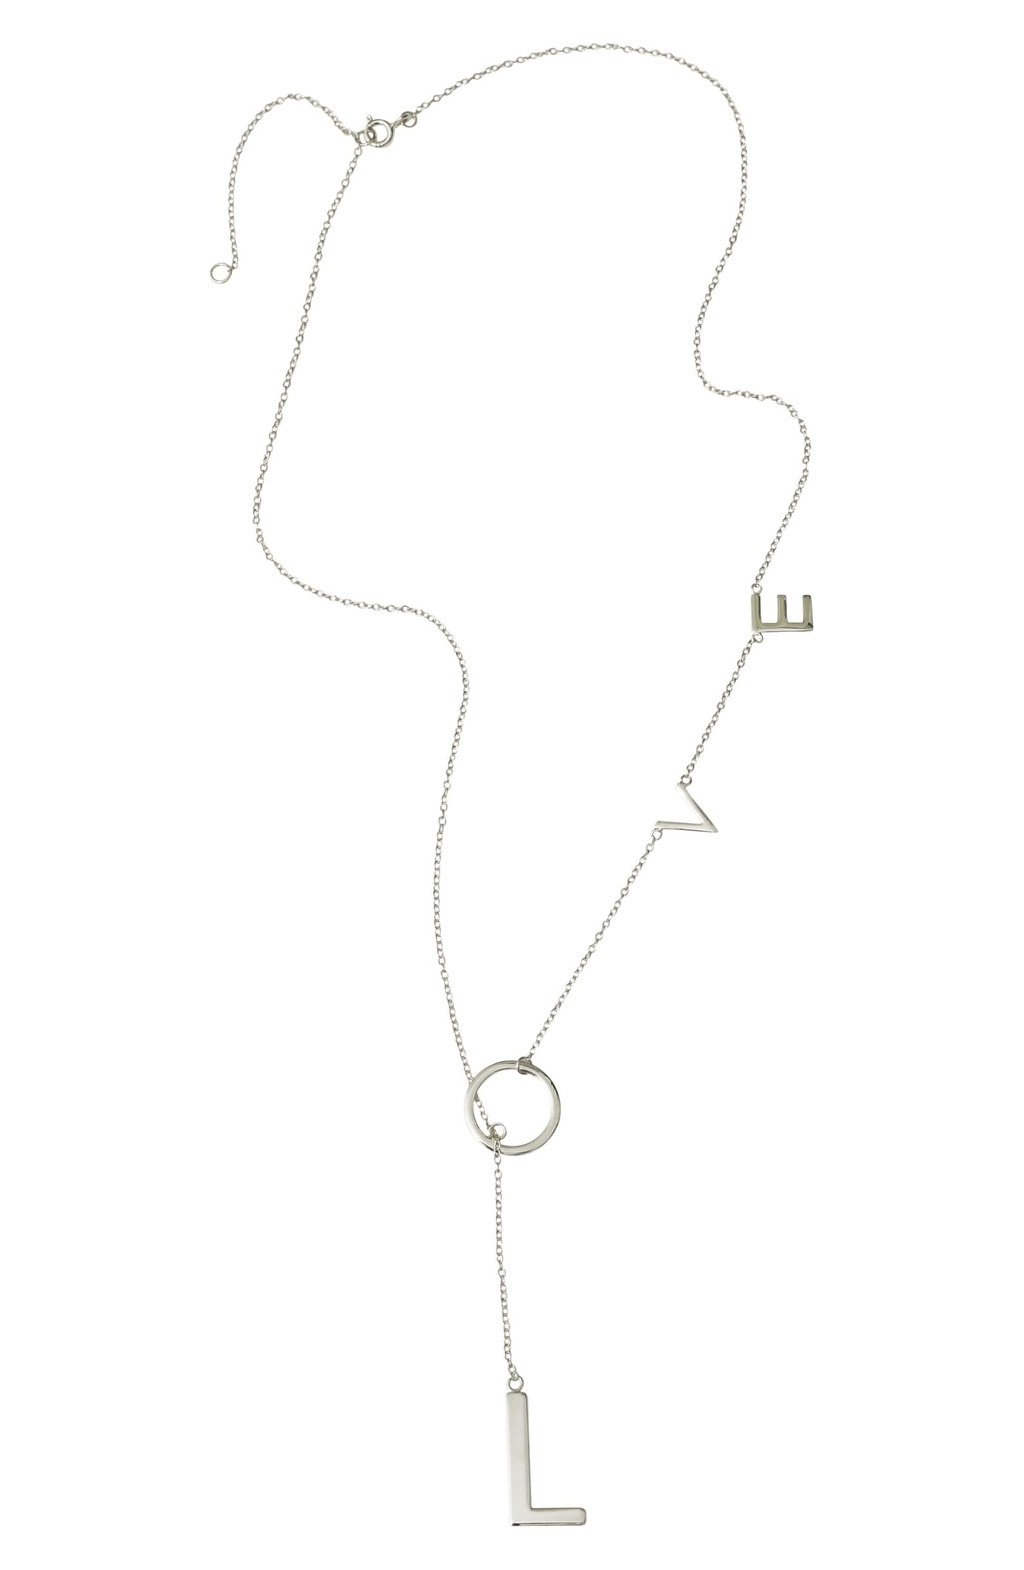 Adornia Love Lariat Necklace, popular silver jewelry style